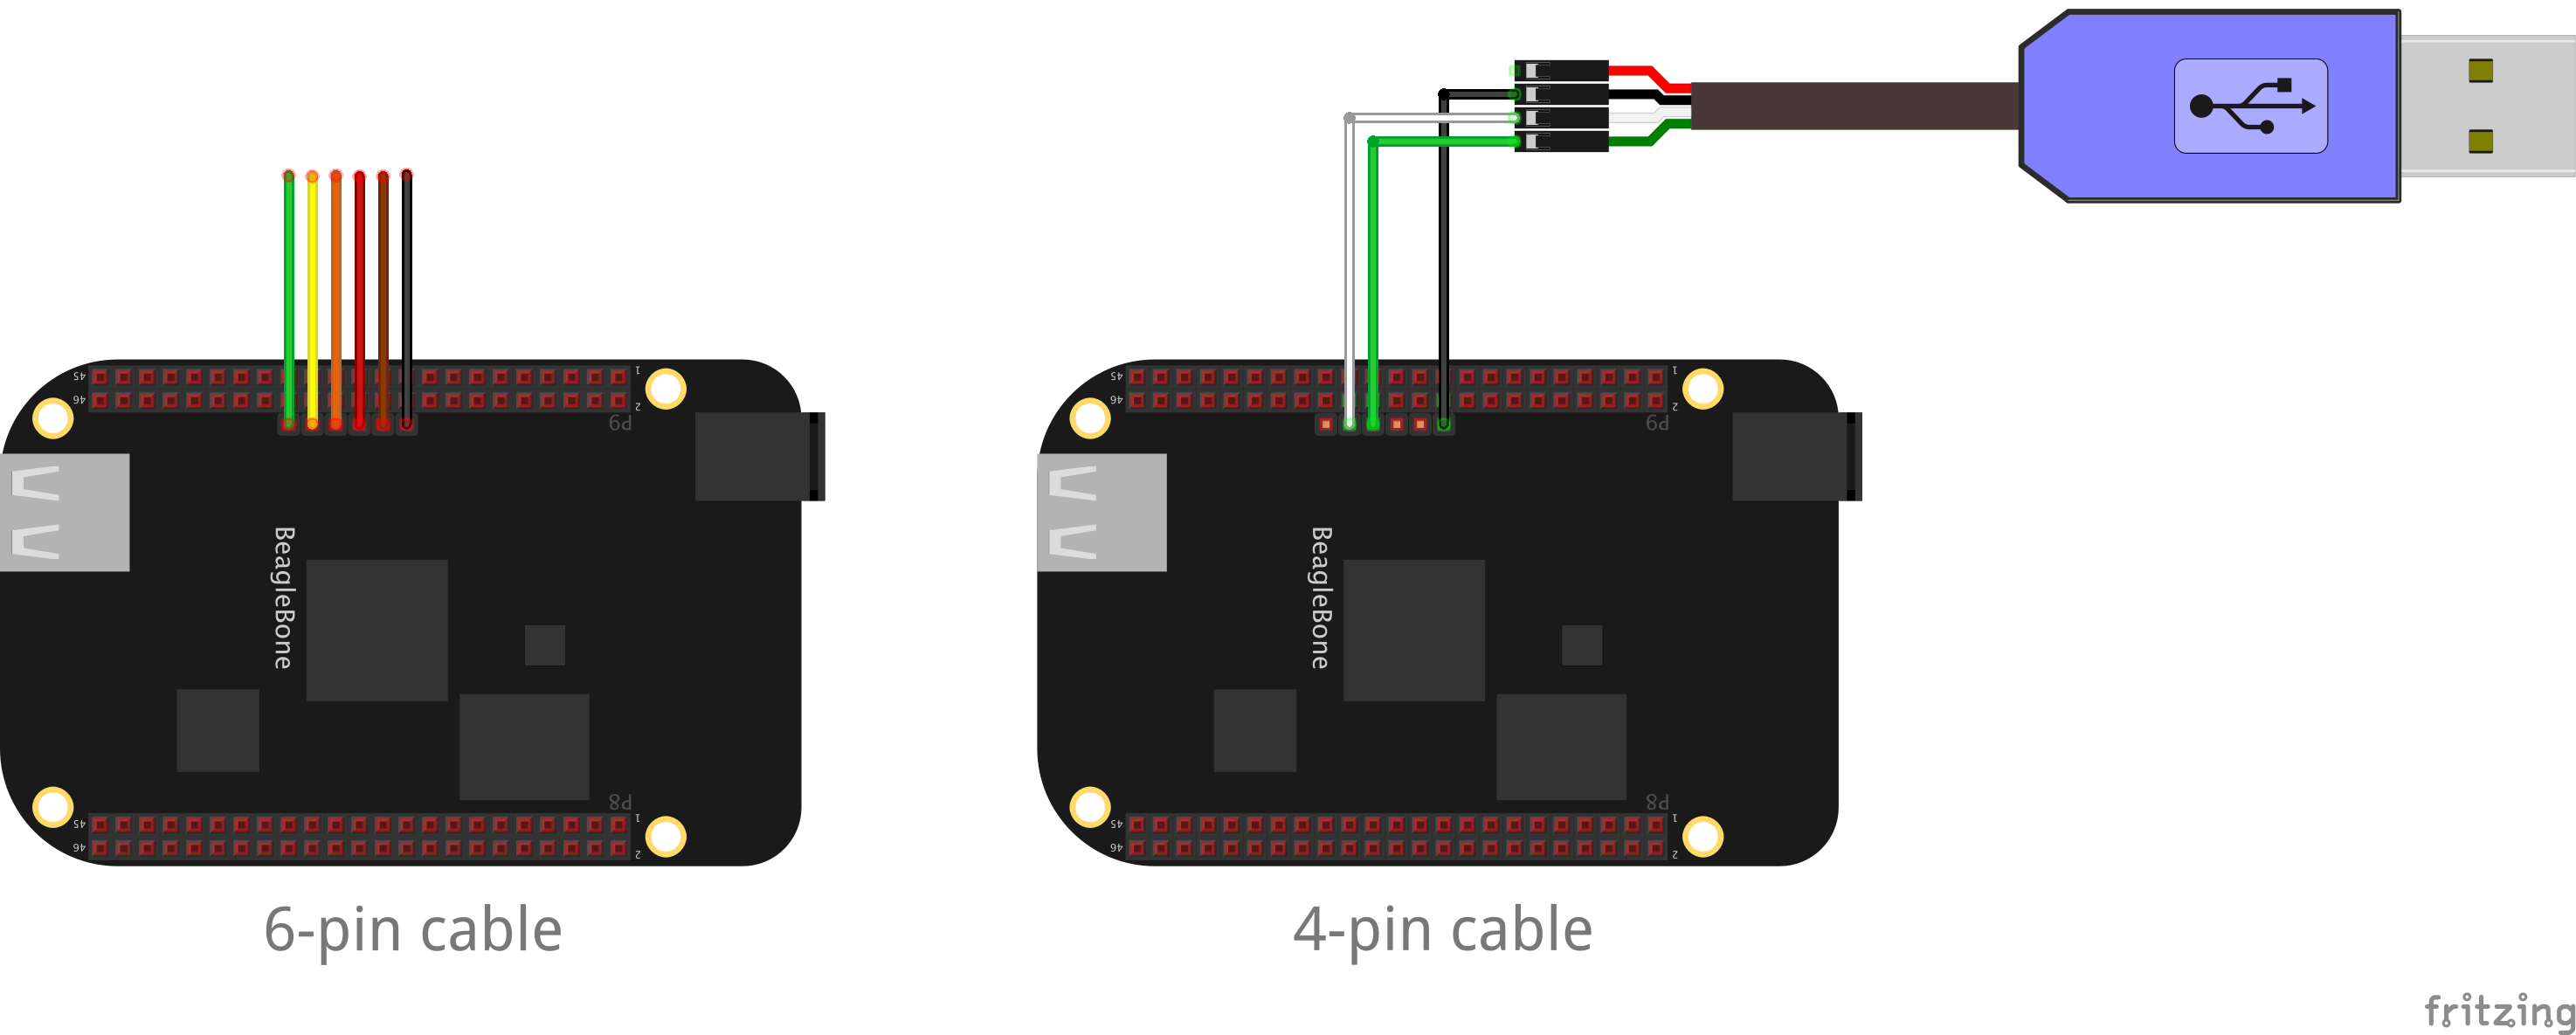 Connecting Pc To Bb Rpi3 Serial Console Studs Ftdi Usb Cable Wiring Diagram